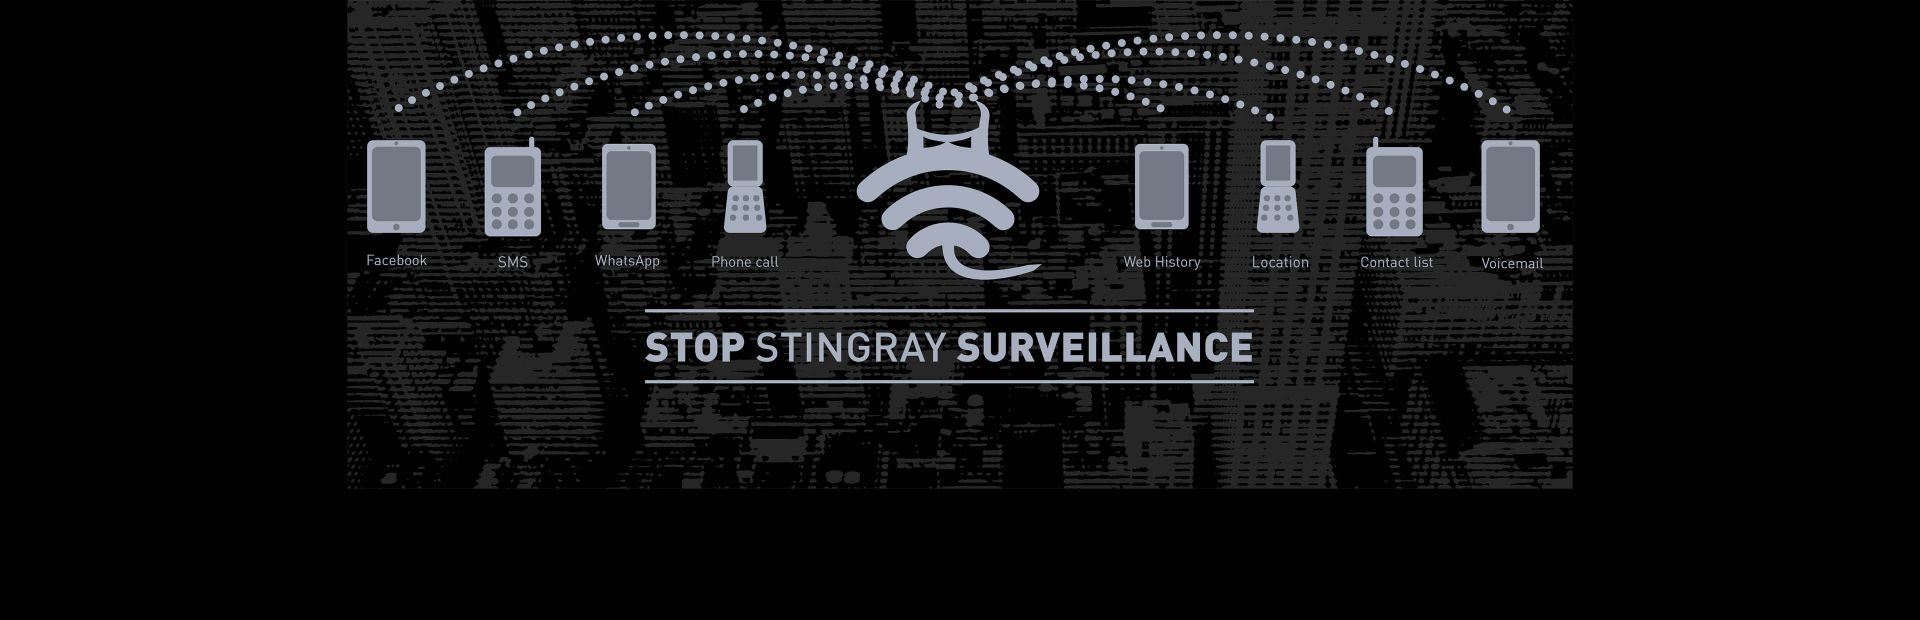 Stop Stingray Surveillance